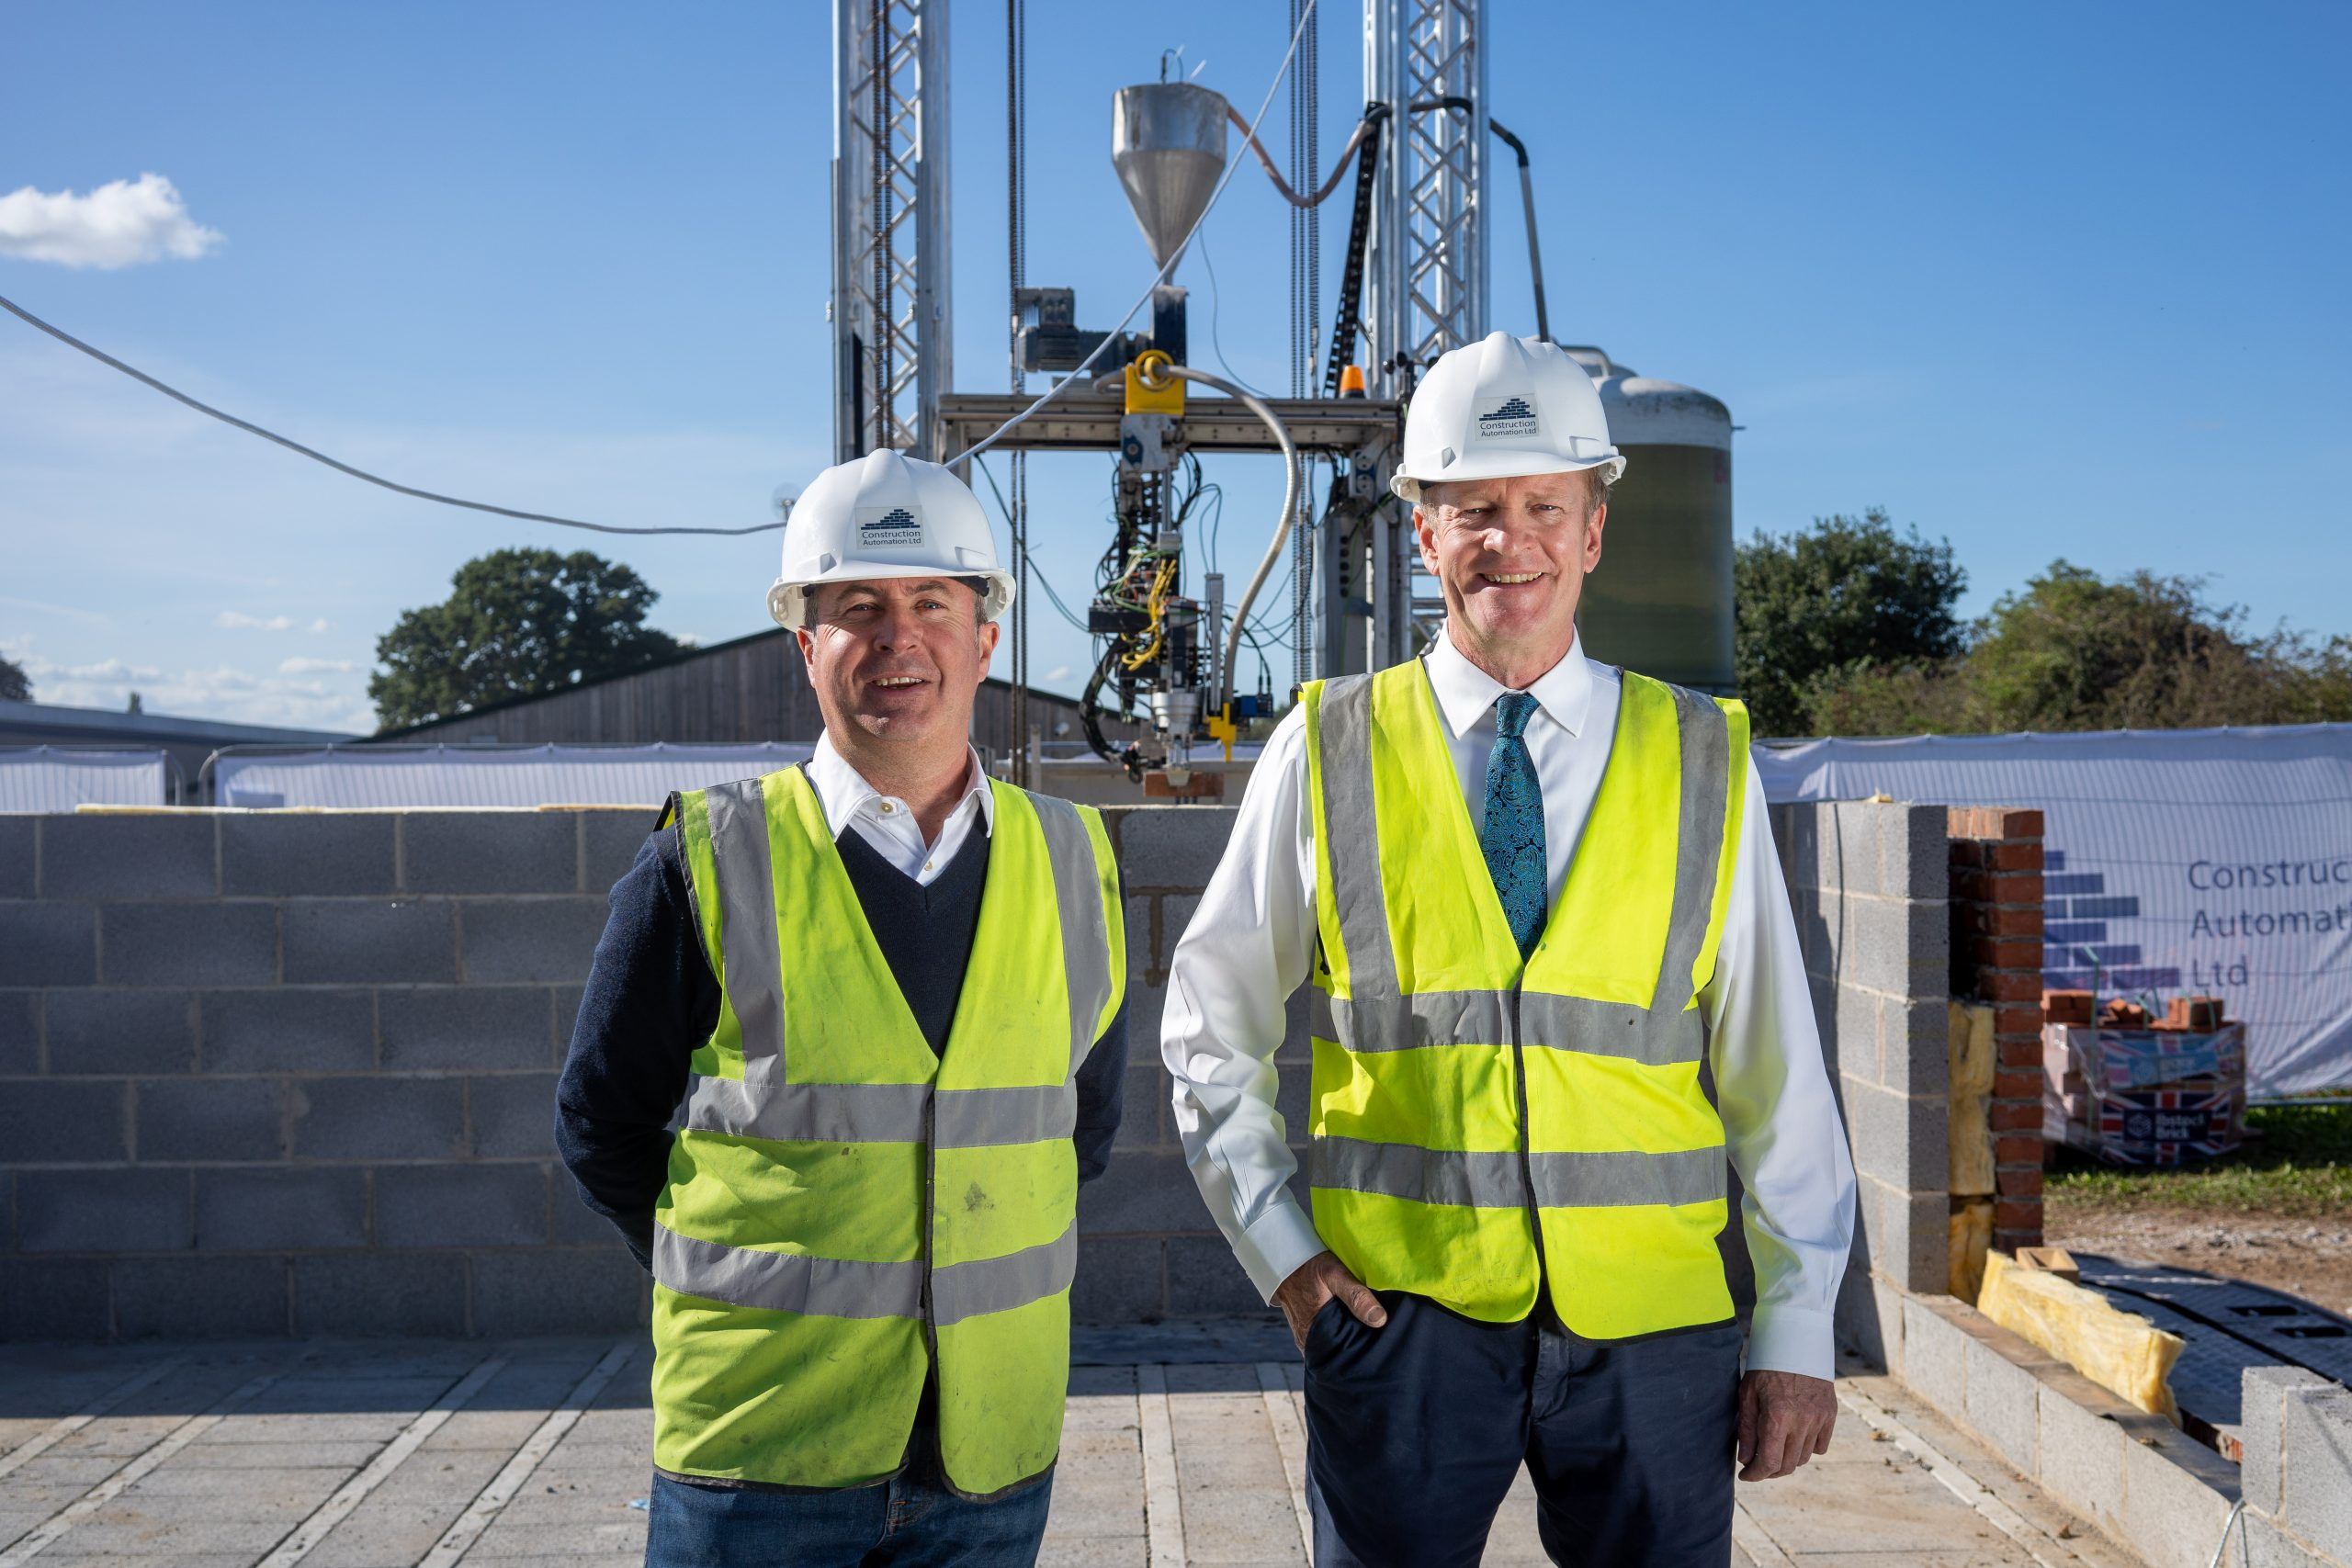 Work gets underway on UK's first ever robot-built house